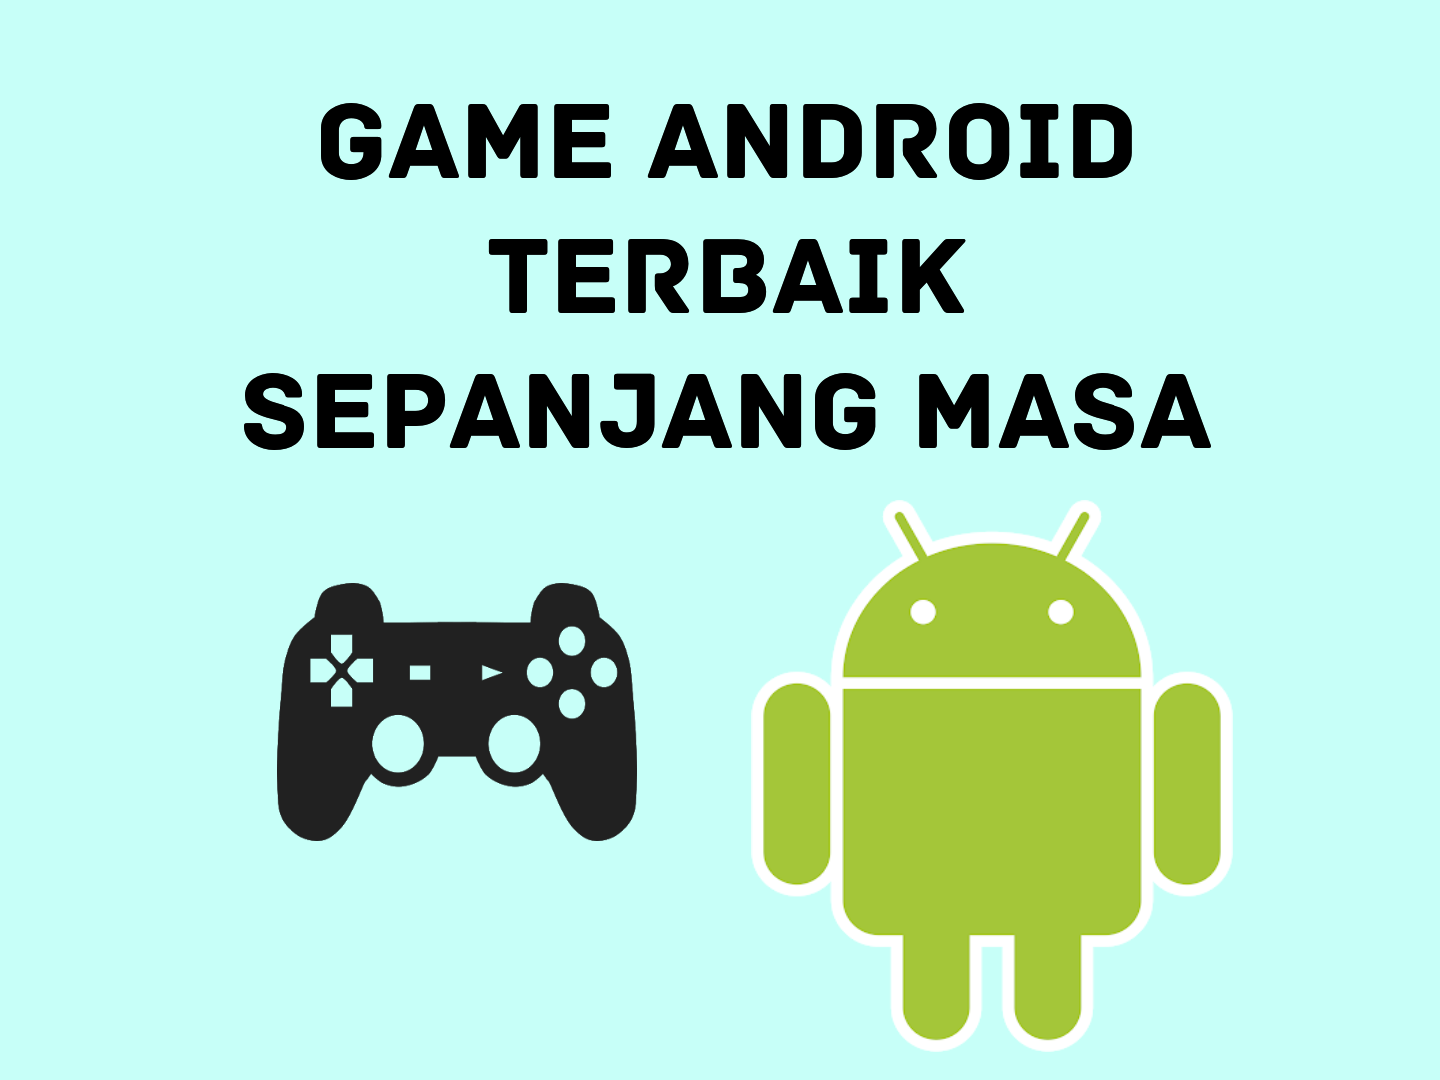 7 Game Android Terbaik Sepanjang Masa: PUBG Mobile, Candy Crush Saga